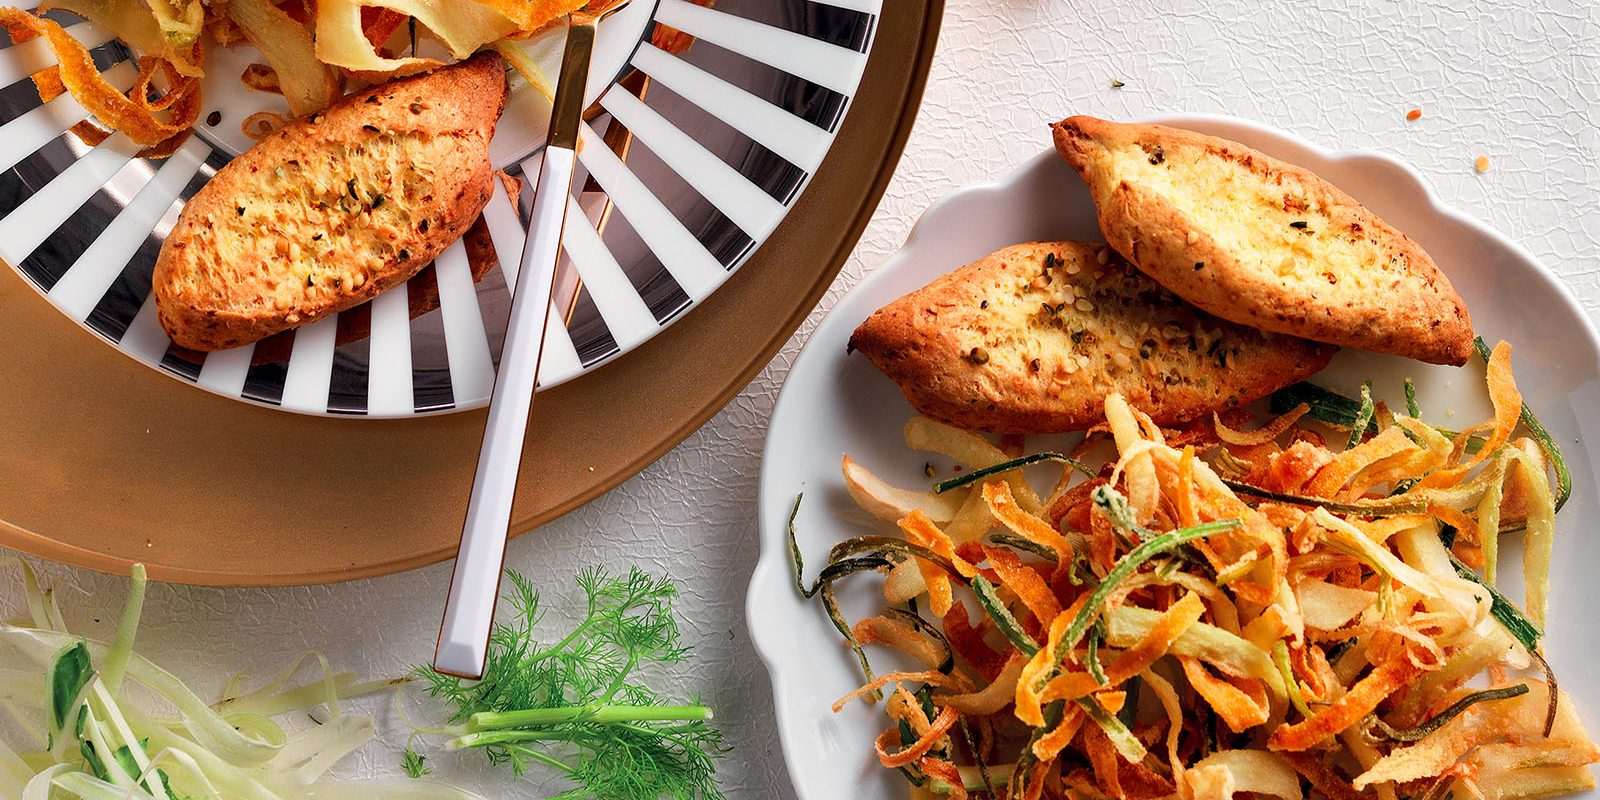 Fried Peels and Baked Bread With Vegetable Scraps